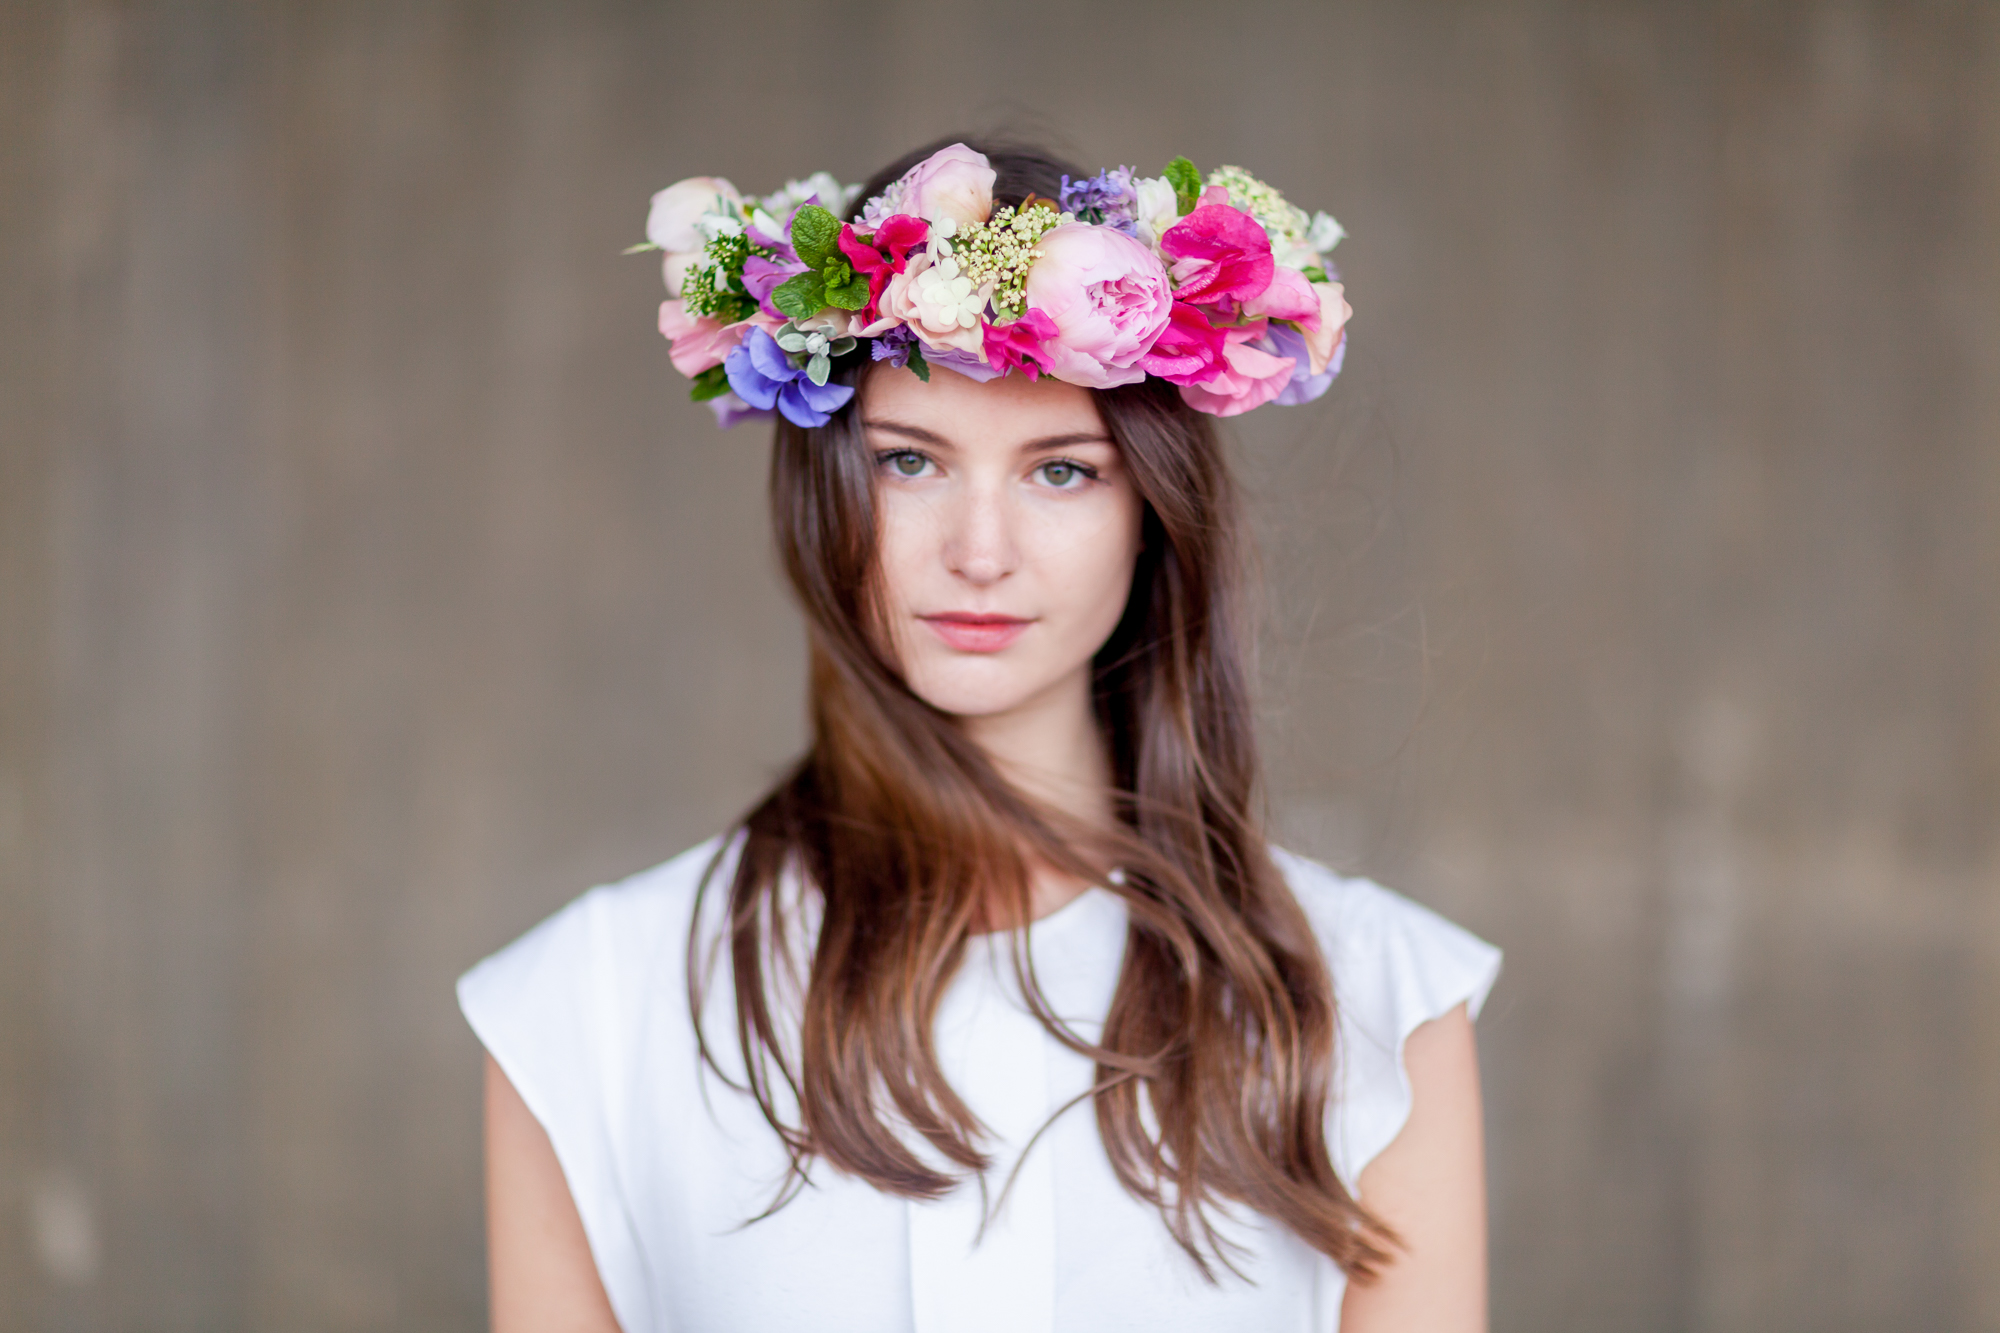 Day 4 of British Flowers Week 2016, featuring A Festive Headpiece designed by Anna and Ellie of The Flower Appreciation Society, presented to you by New Covent Garden Flower Market